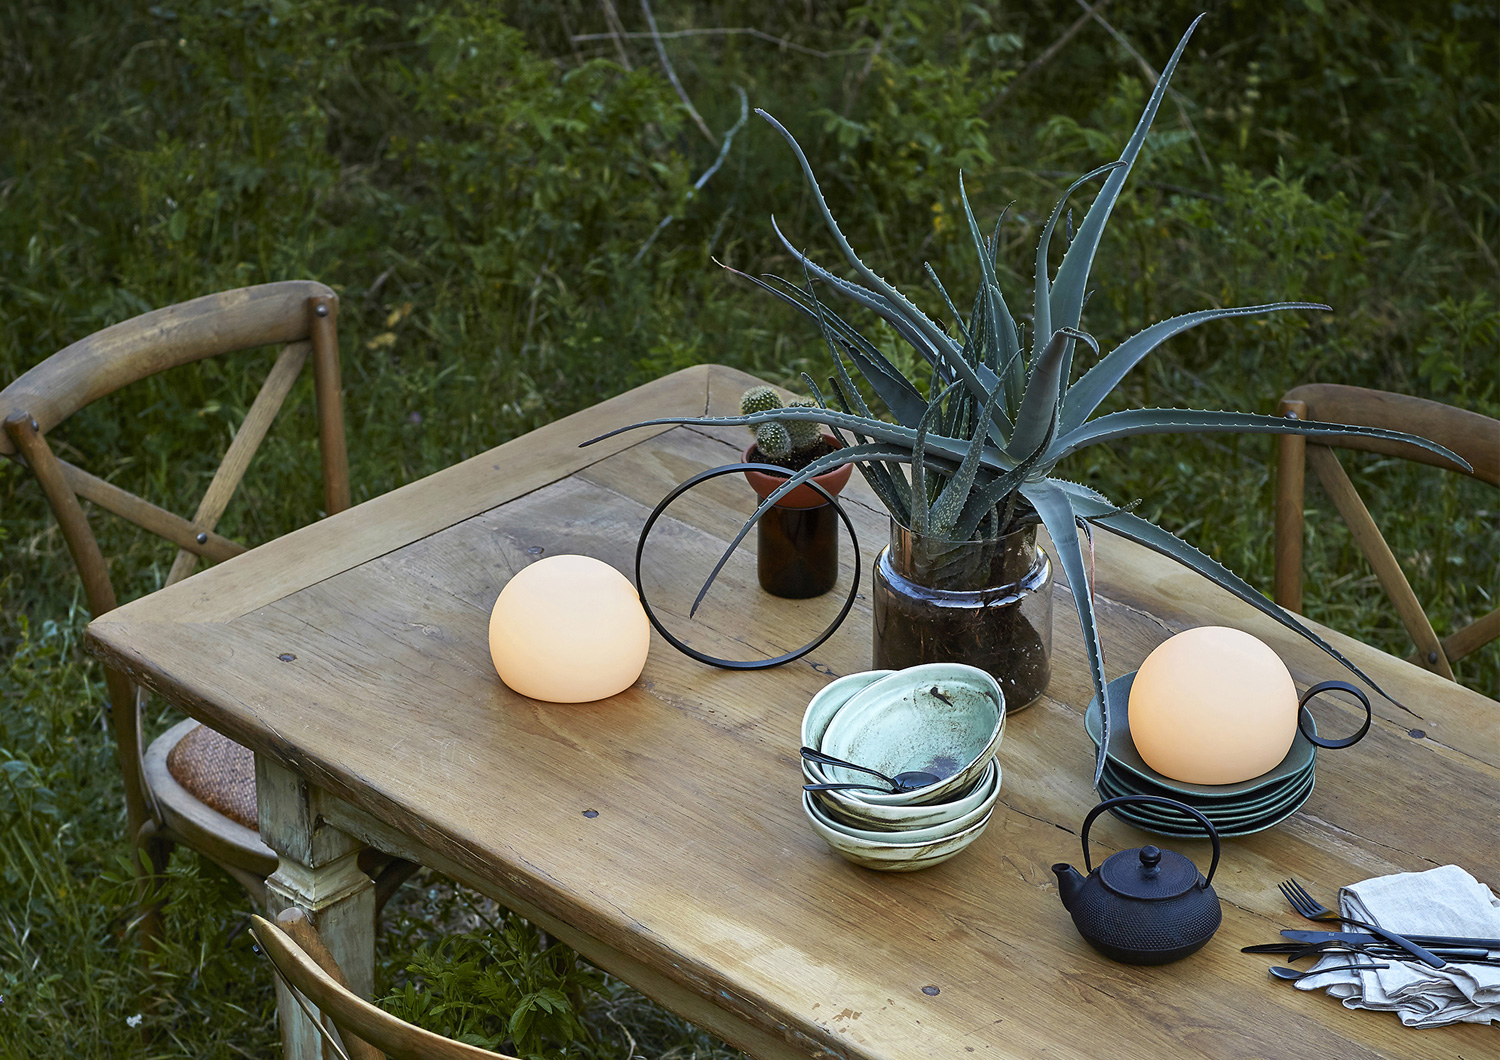 Outdoor Decorative Lamps Gallery 05